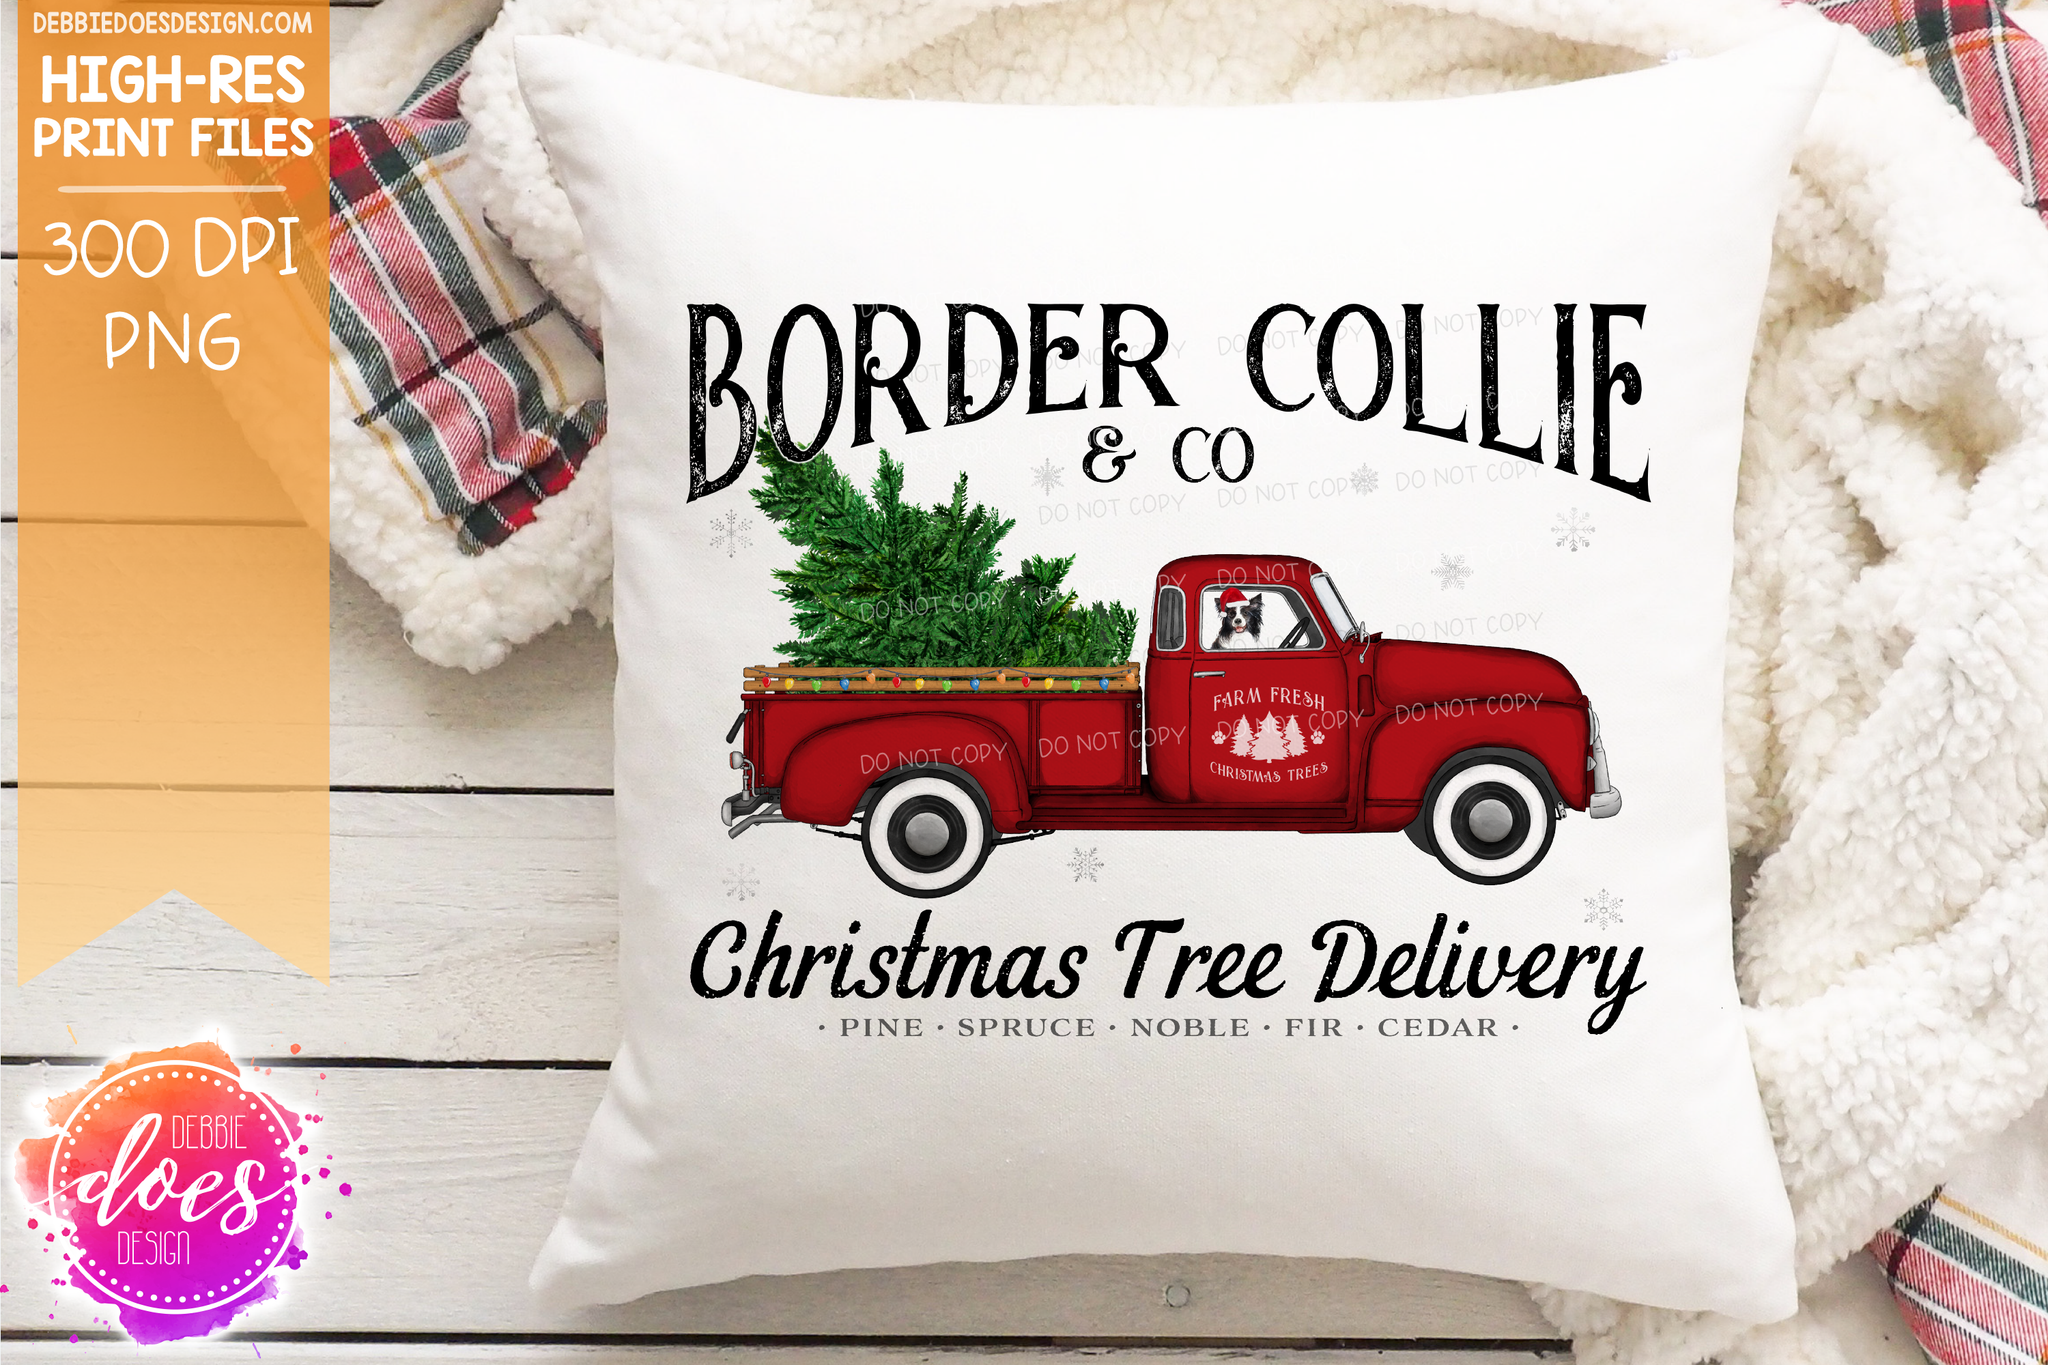 Border Collie - Dog Christmas Tree Delivery Truck  - Sublimation/Printable Design